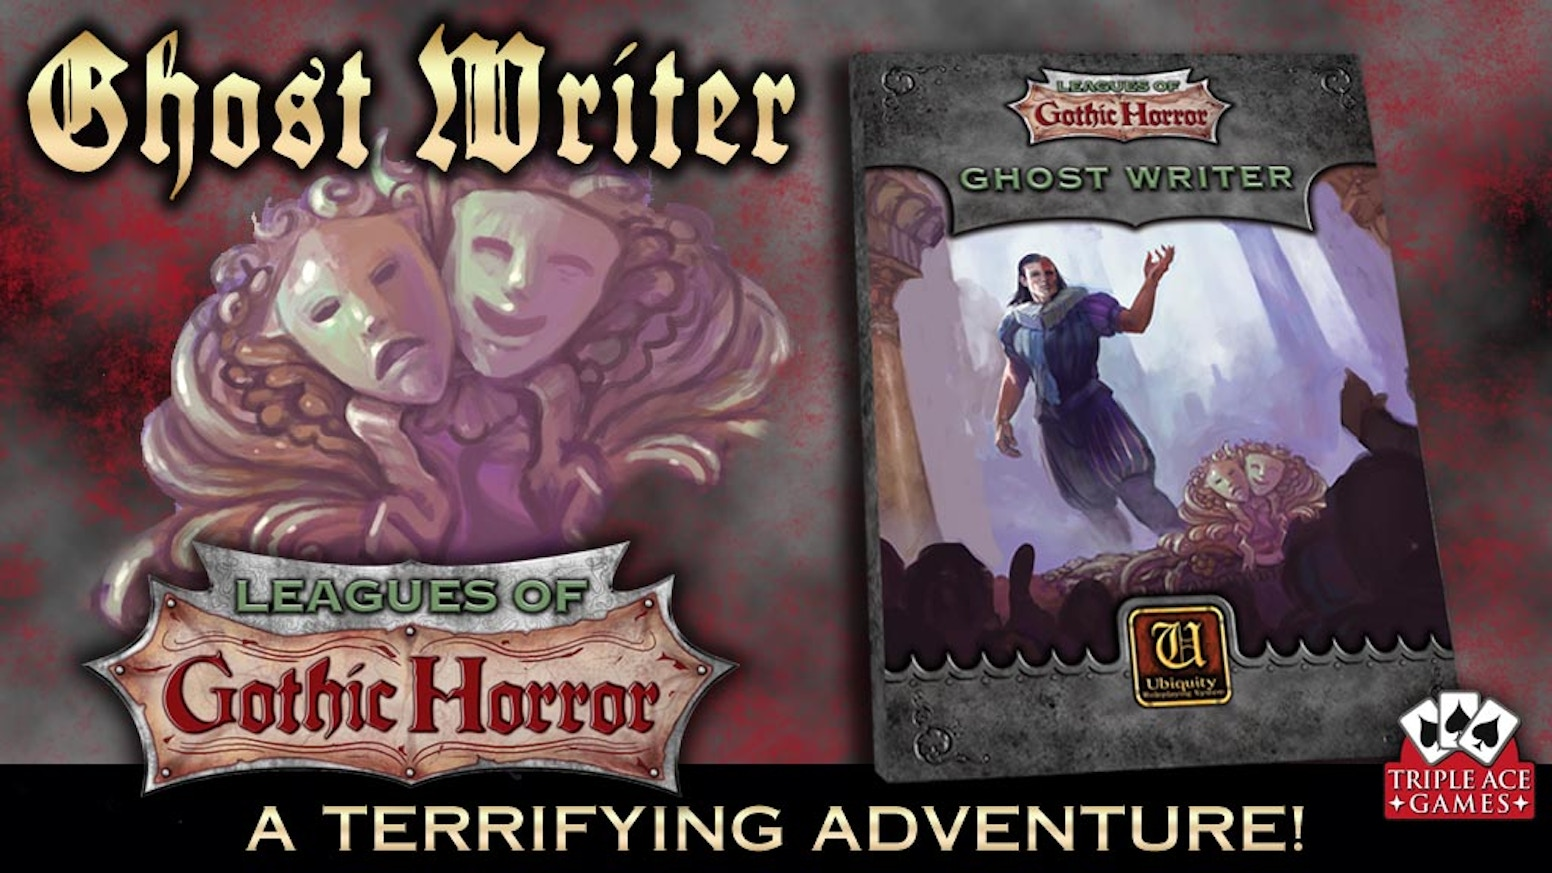 A Leagues of Gothic Horror RPG adventure, where theater and death become one!